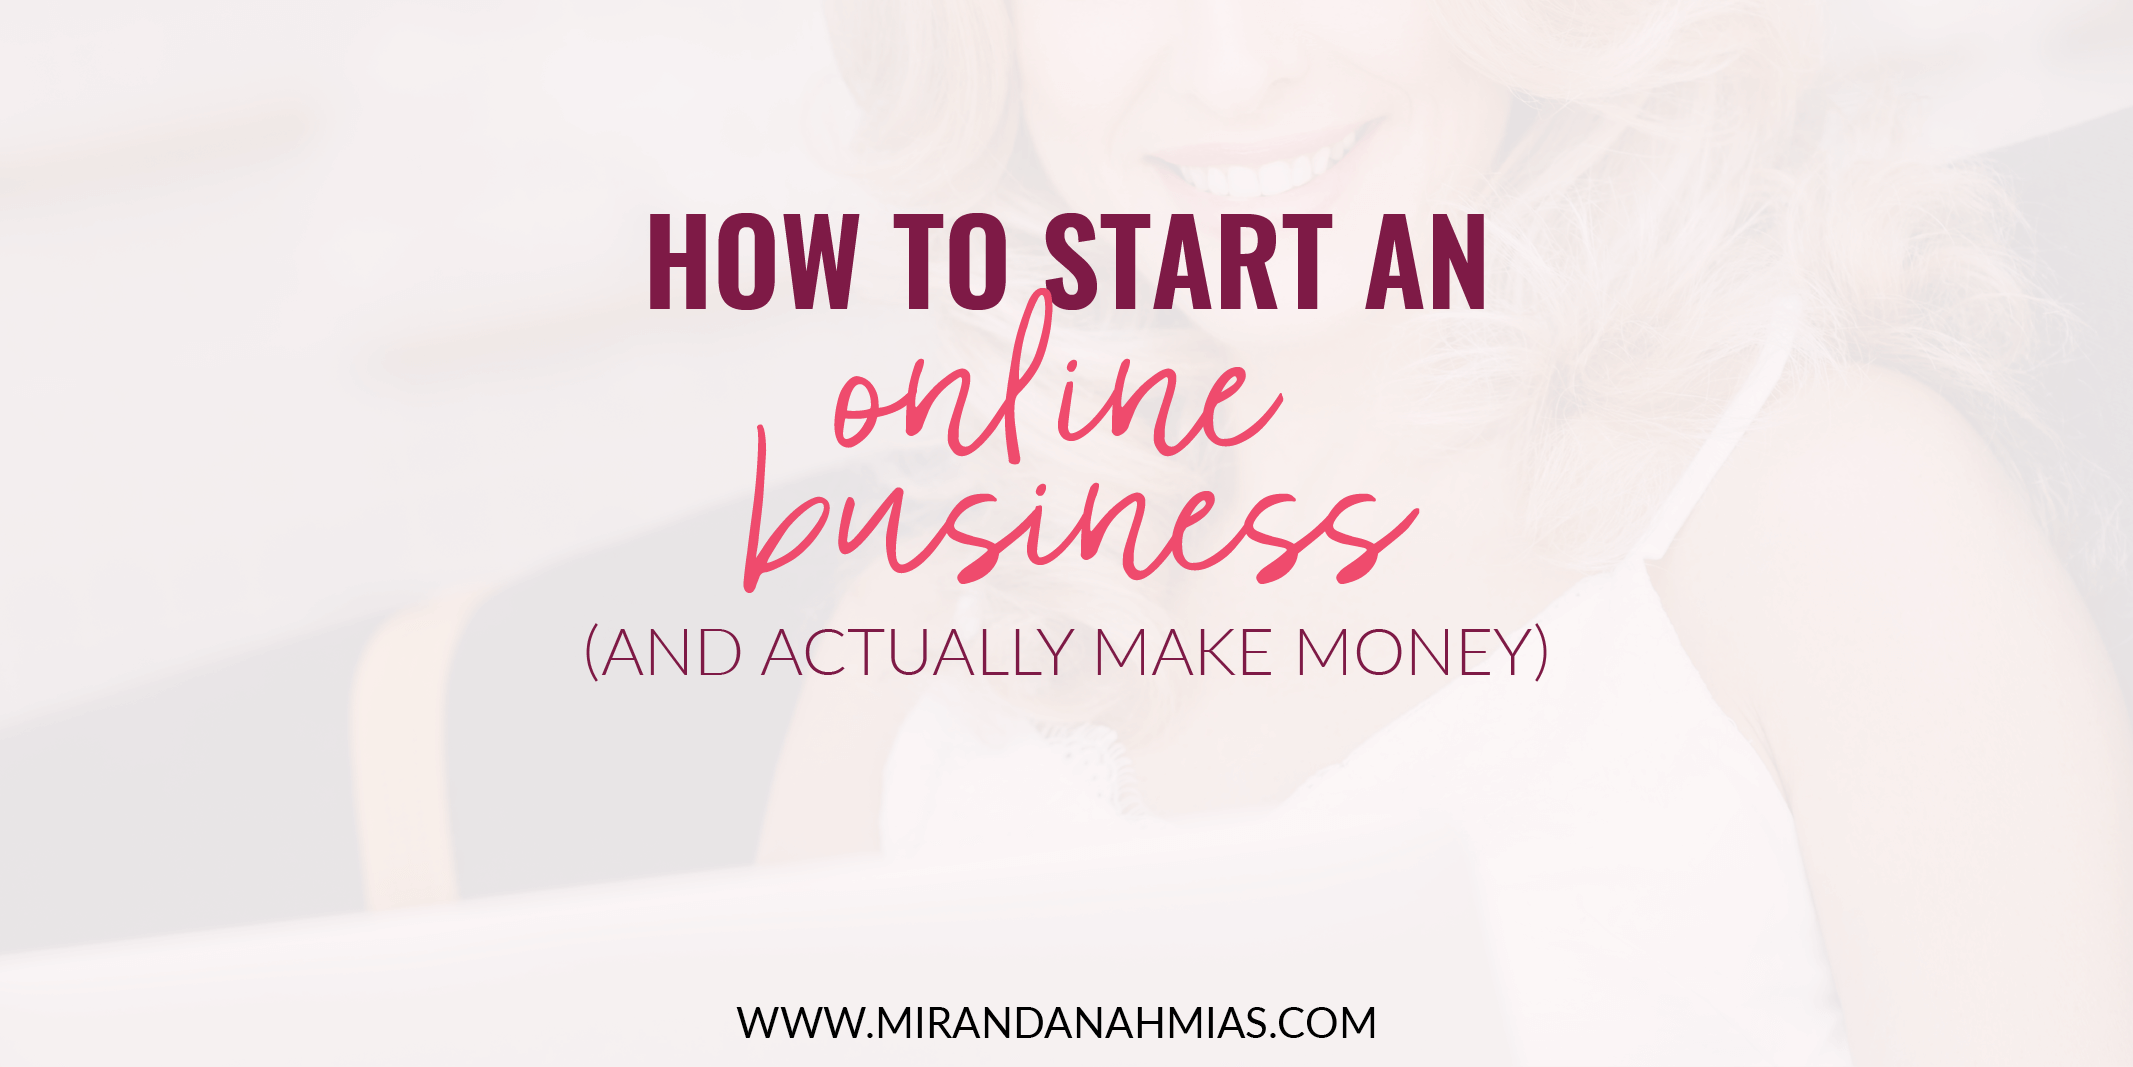 How-to-start-an-online-business-and-actually-make-money